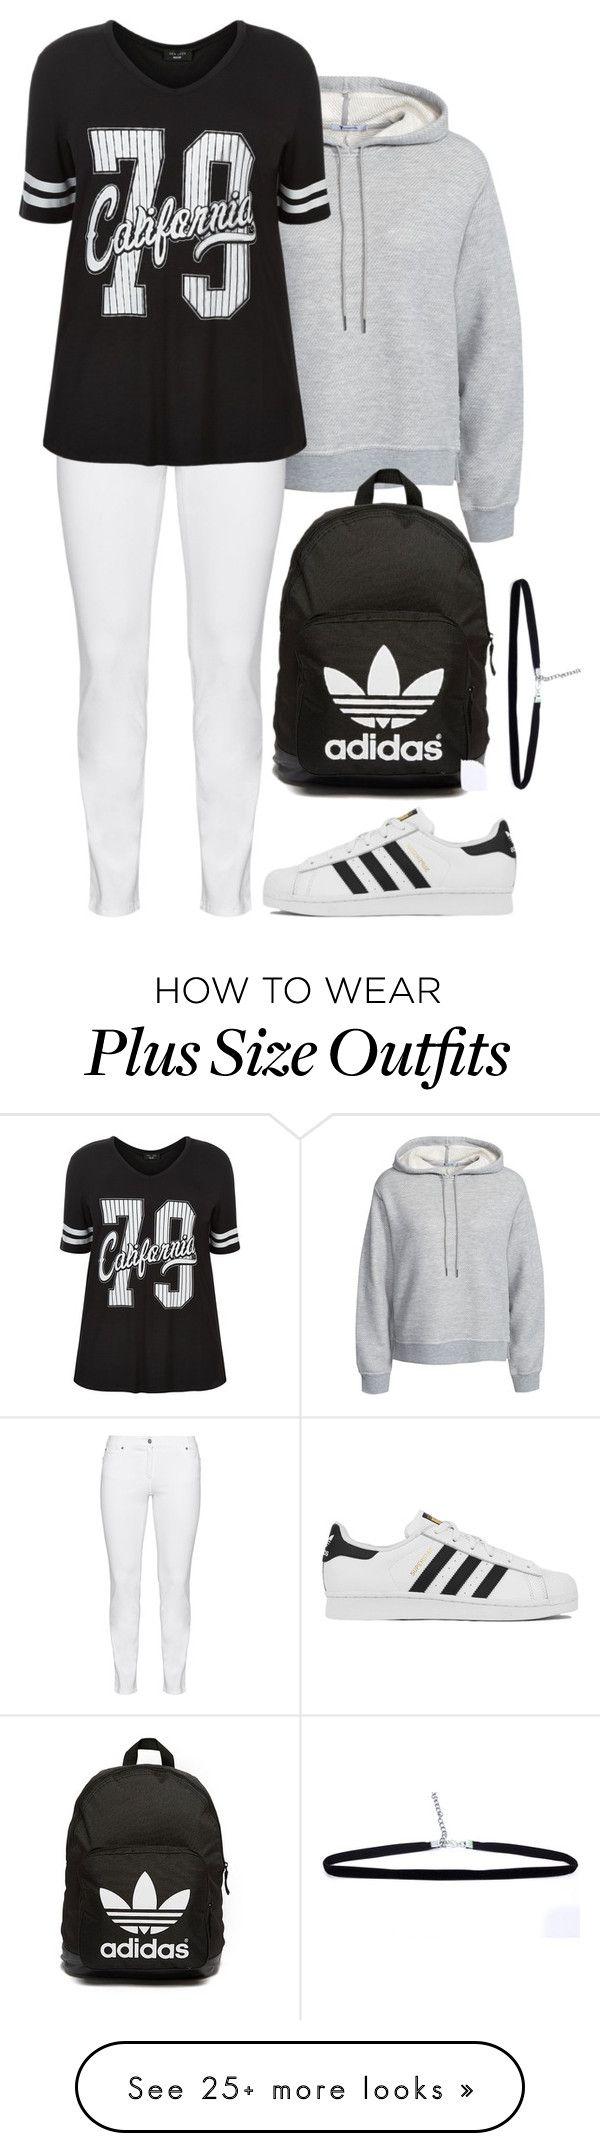 """""""Untitled #284"""" by sunshinesmiley2000 on Polyvore featuring T By Alexander Wang, Steilmann, adidas, adidas Originals, women's clothing, women, female, woman, misses and juniors"""